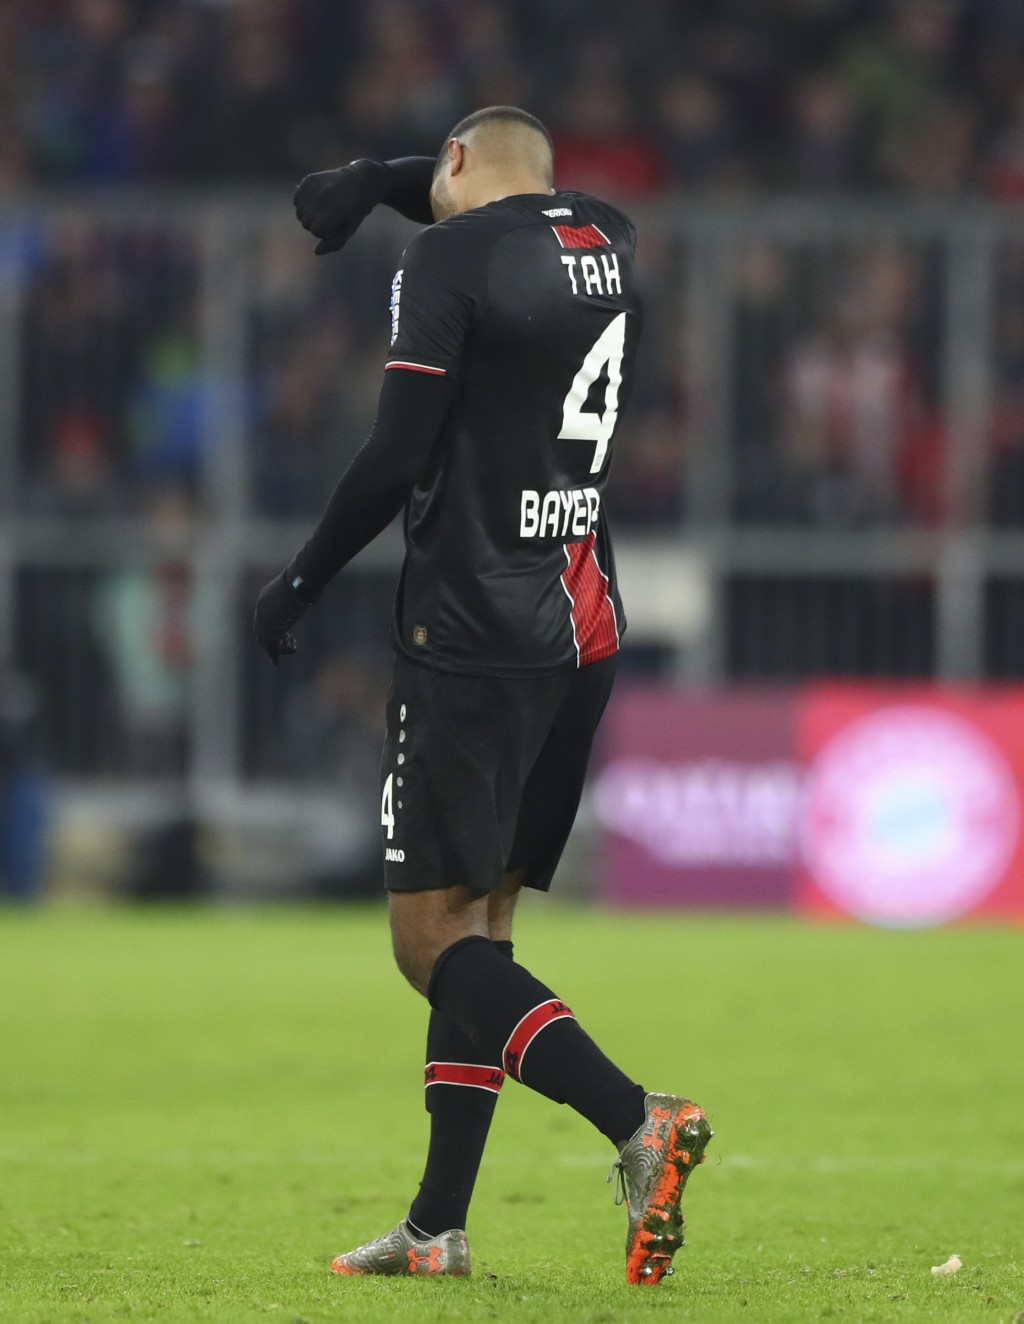 Leverkusen's Jonathan Tah walks off the pitch after he got the red card during the German Bundesliga first devision soccer match between FC Bayern Mun...